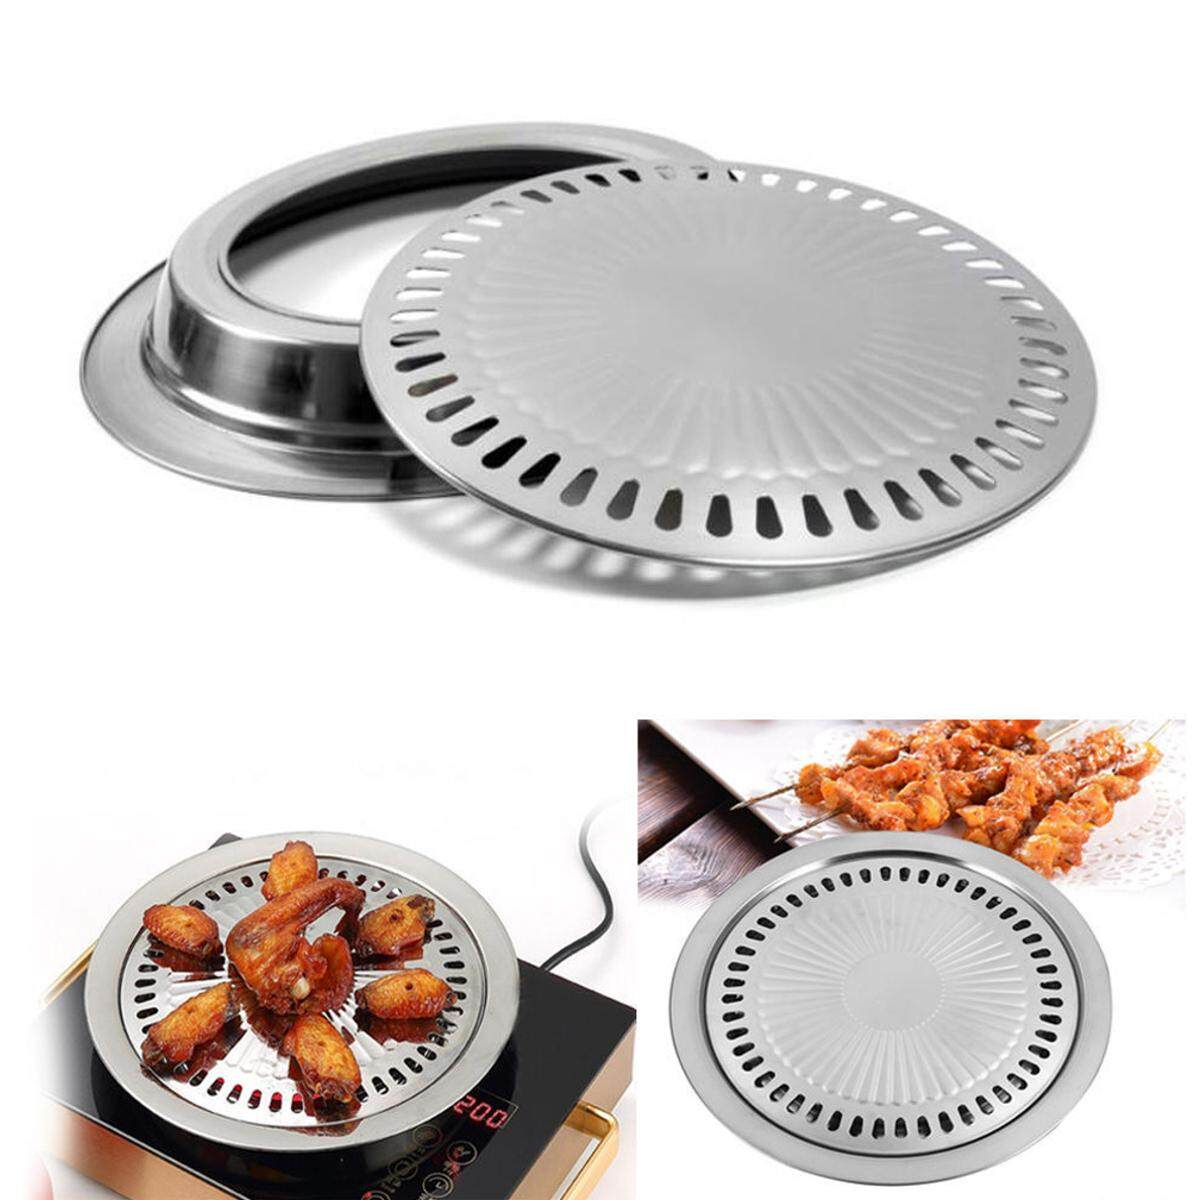 Indoor Outdoor Bbq Smokeless Stovetop Grill Non-Stick Roasting Pan Round Grill - Intl By Teamwin.